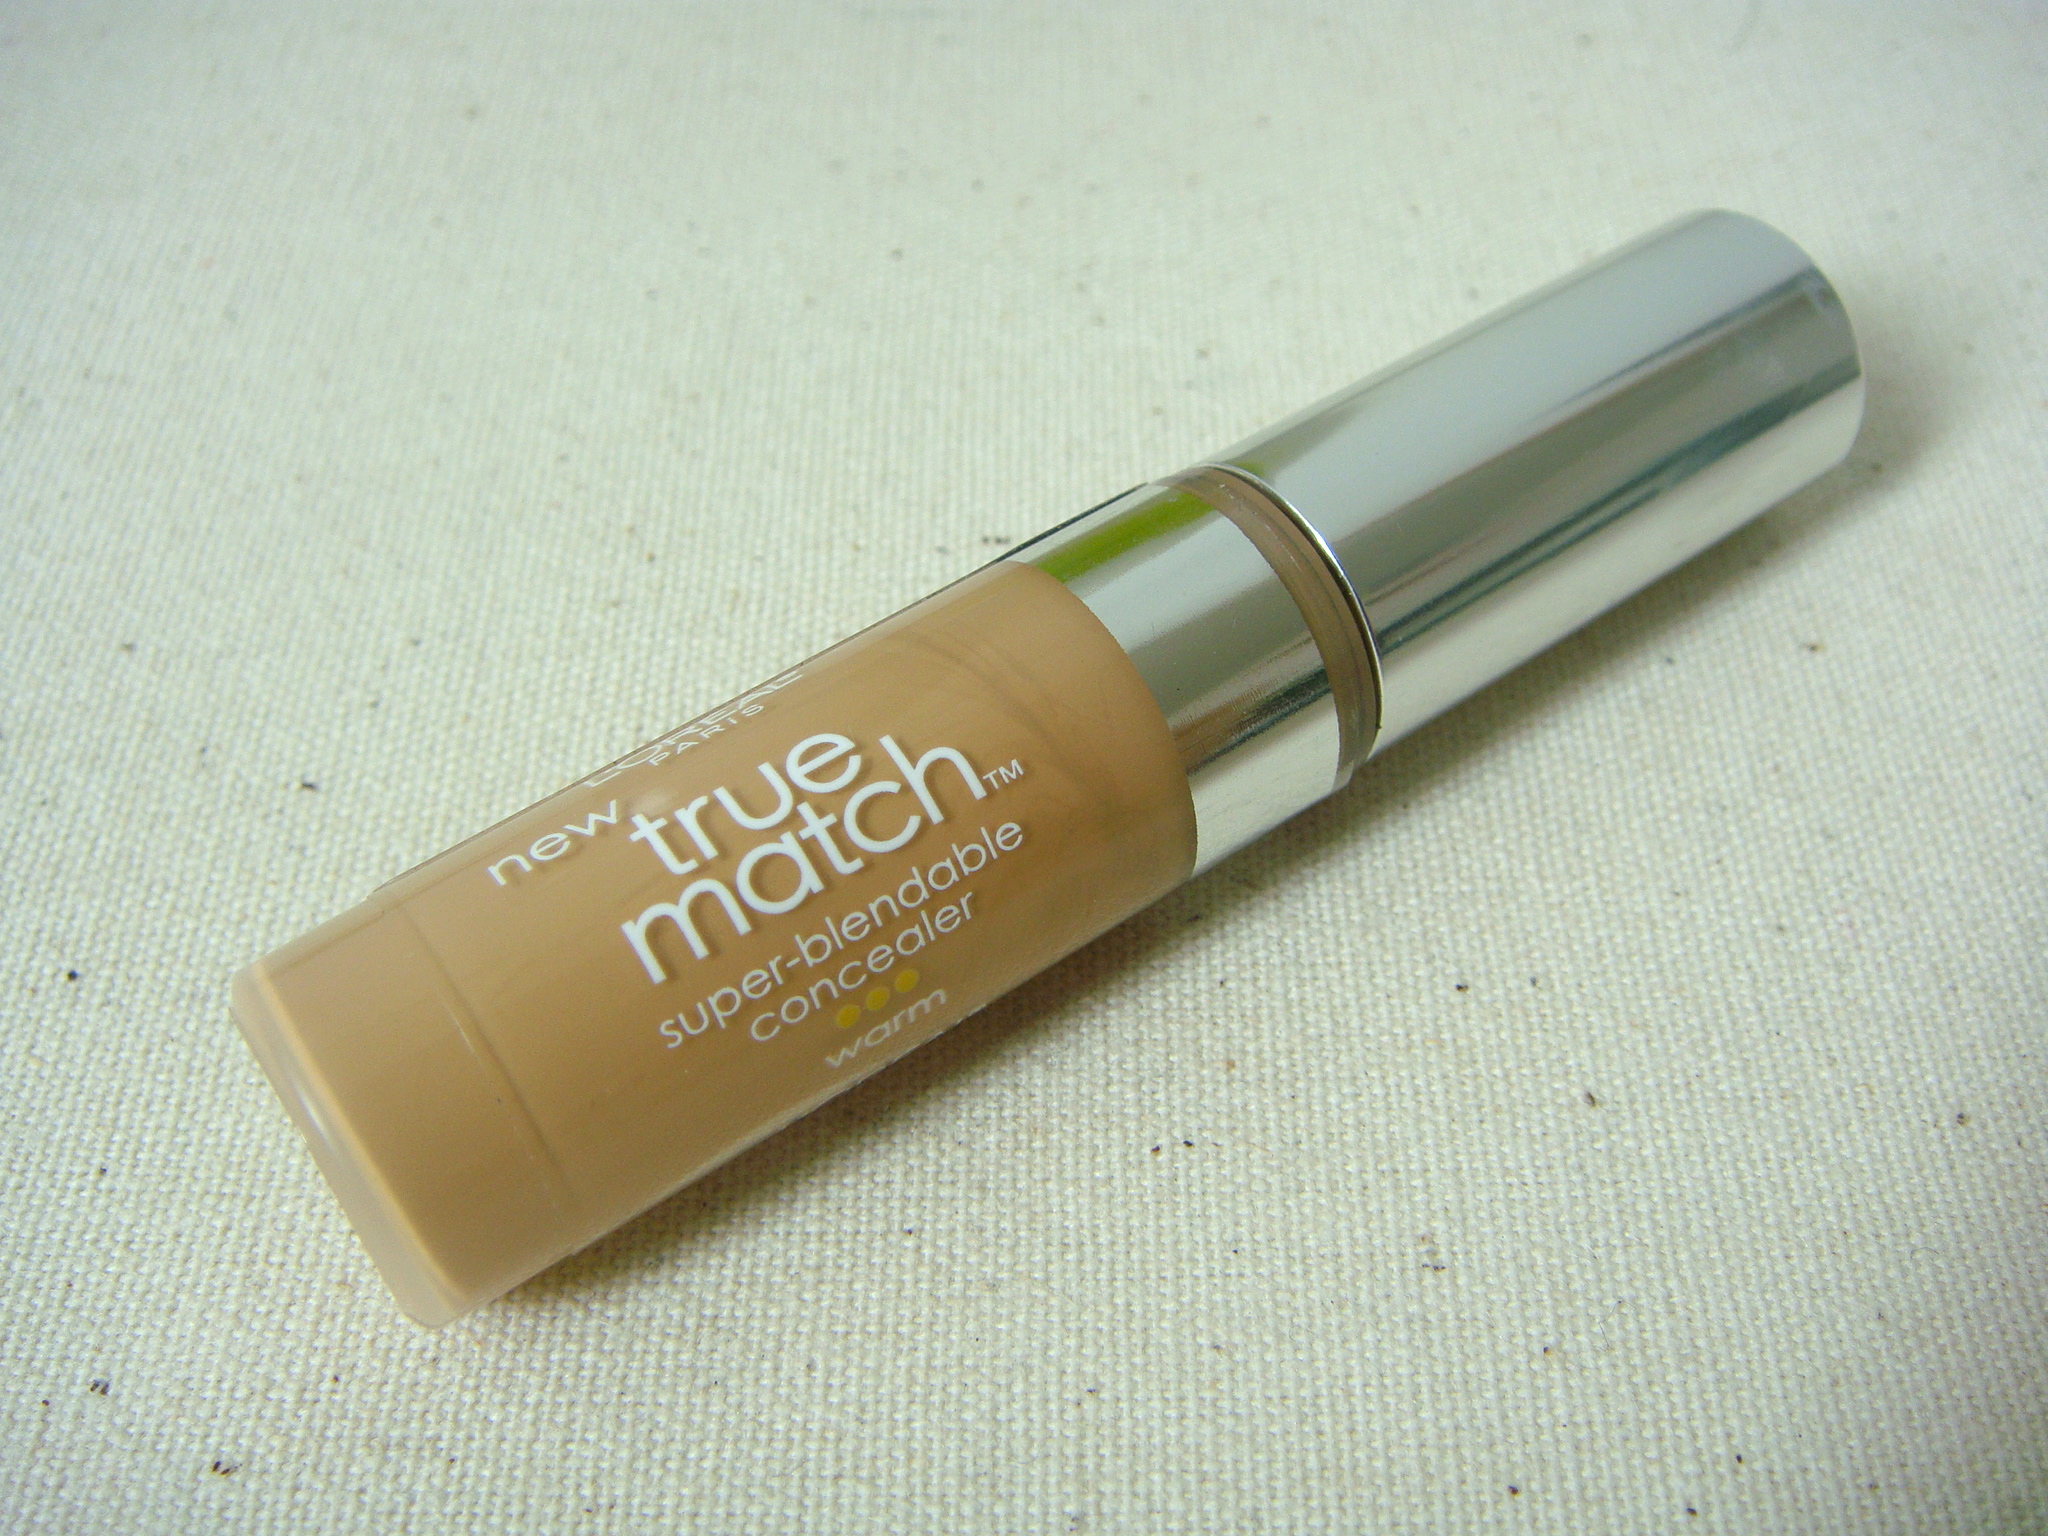 L'Oreal Paris True Match Concealer-Easy to blend.-By simmi_haswani-13